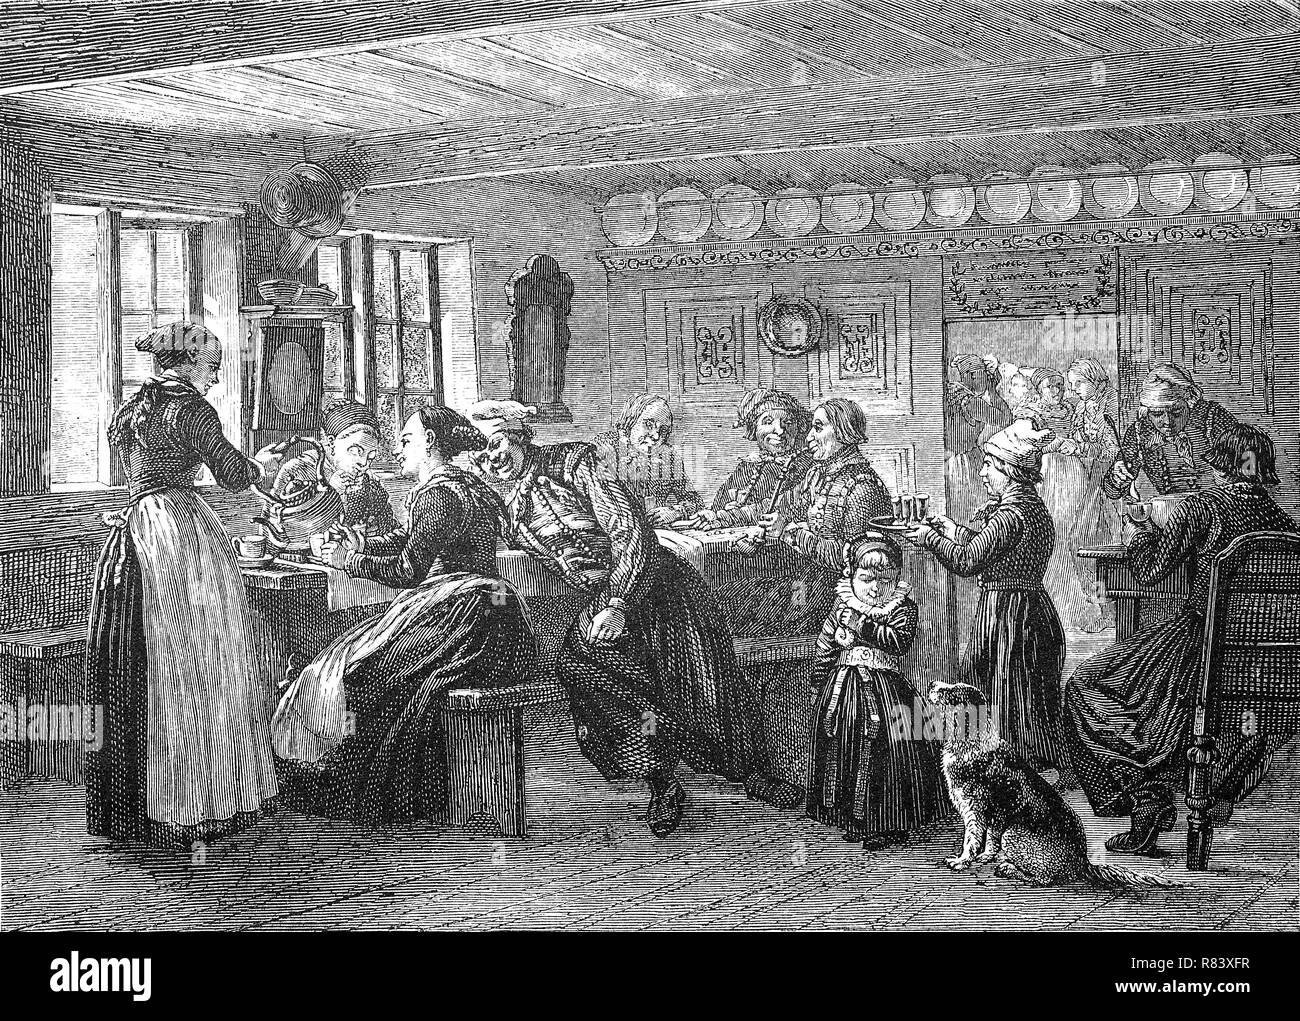 Digital improved reproduction, Denmark, a hostel on the island of Amager, Dänemark, Eine Herberge auf der Insel Amager, from an original print from the year 1855 - Stock Image